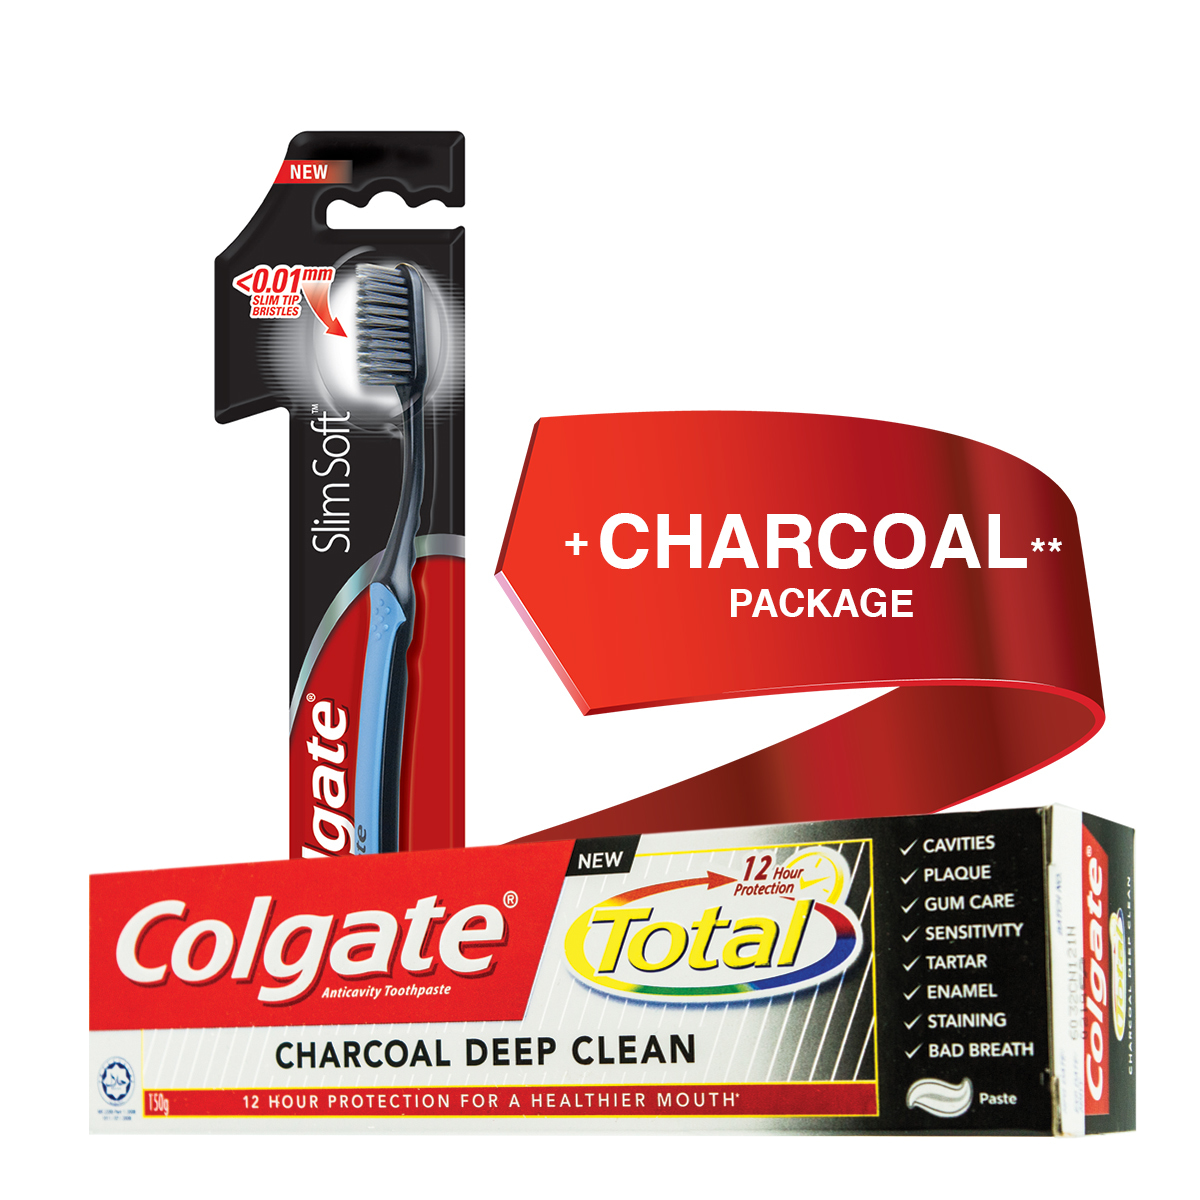 Body Care Blanjacom Buy 4 Get 1 Free Oilum Hydrating Cleansing Wash Pouch Colgate Tb Slimsoft Charcoal 1s Total Rp 61400 41752 32 0